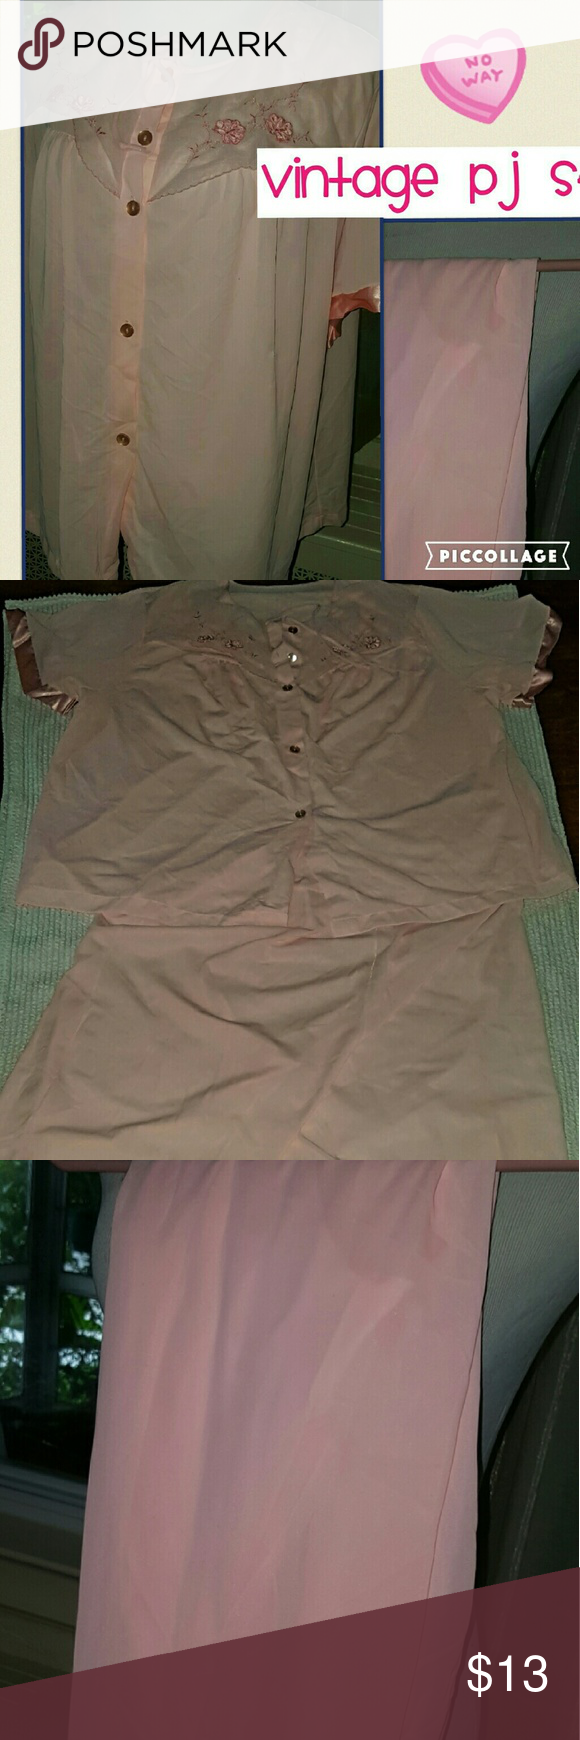 VTG Pajama set XL..1X This is an adorable set that was an estate fi d.. No tags but definitely vintage and nylon. Elastic on pants is excellent and they measure 16 inches without stretching. I tried stretching and it goes to over 22 inches on waistband. Top measures 18 inches shoulder to shoulder and 23 inches under the arms. There is place where front has been mended and that accounts for this price Vintage Intimates & Sleepwear Pajamas